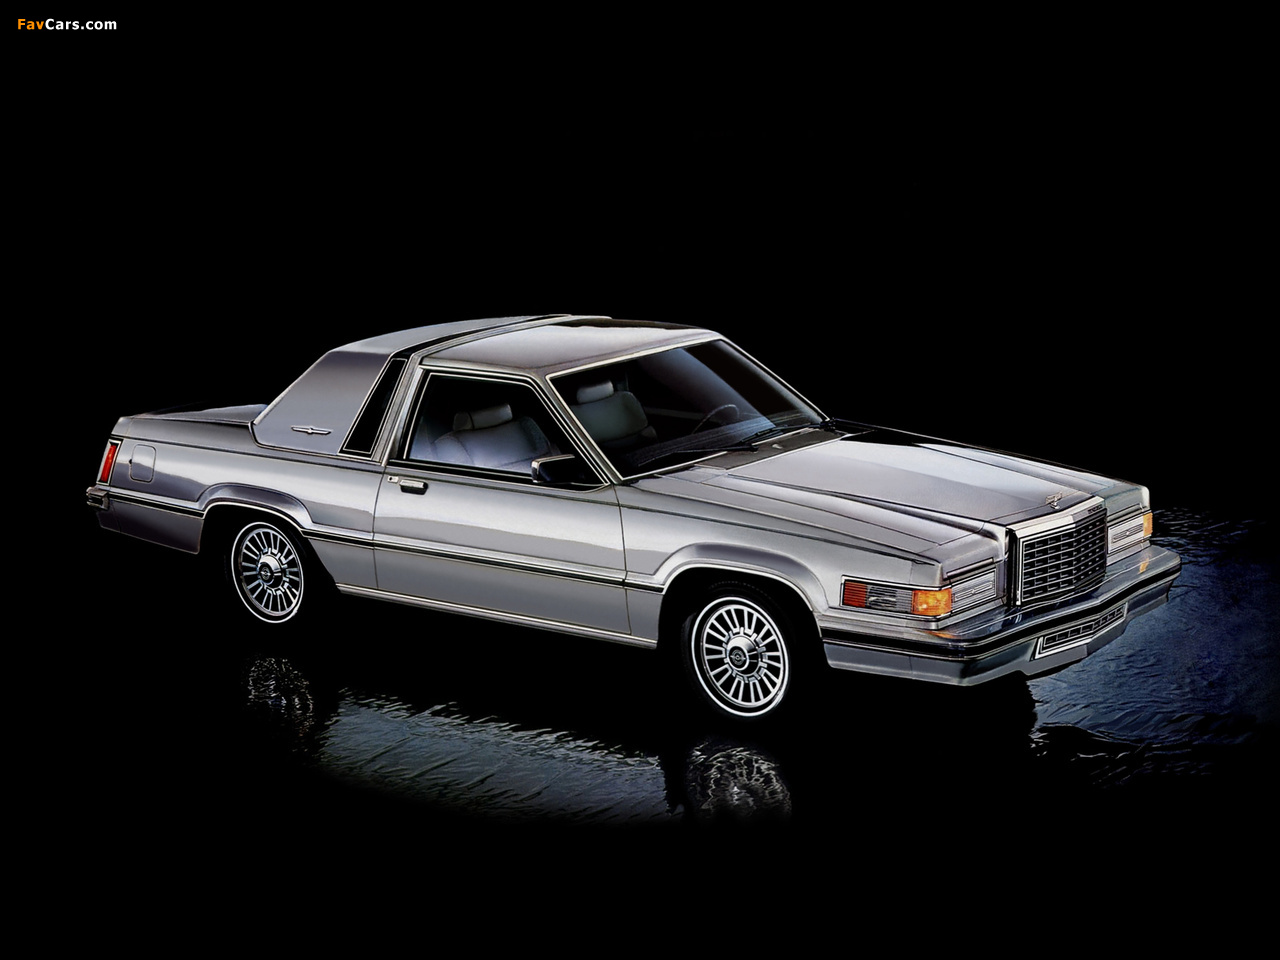 Ford Thunderbird 1980  Review  Amazing Pictures And Images